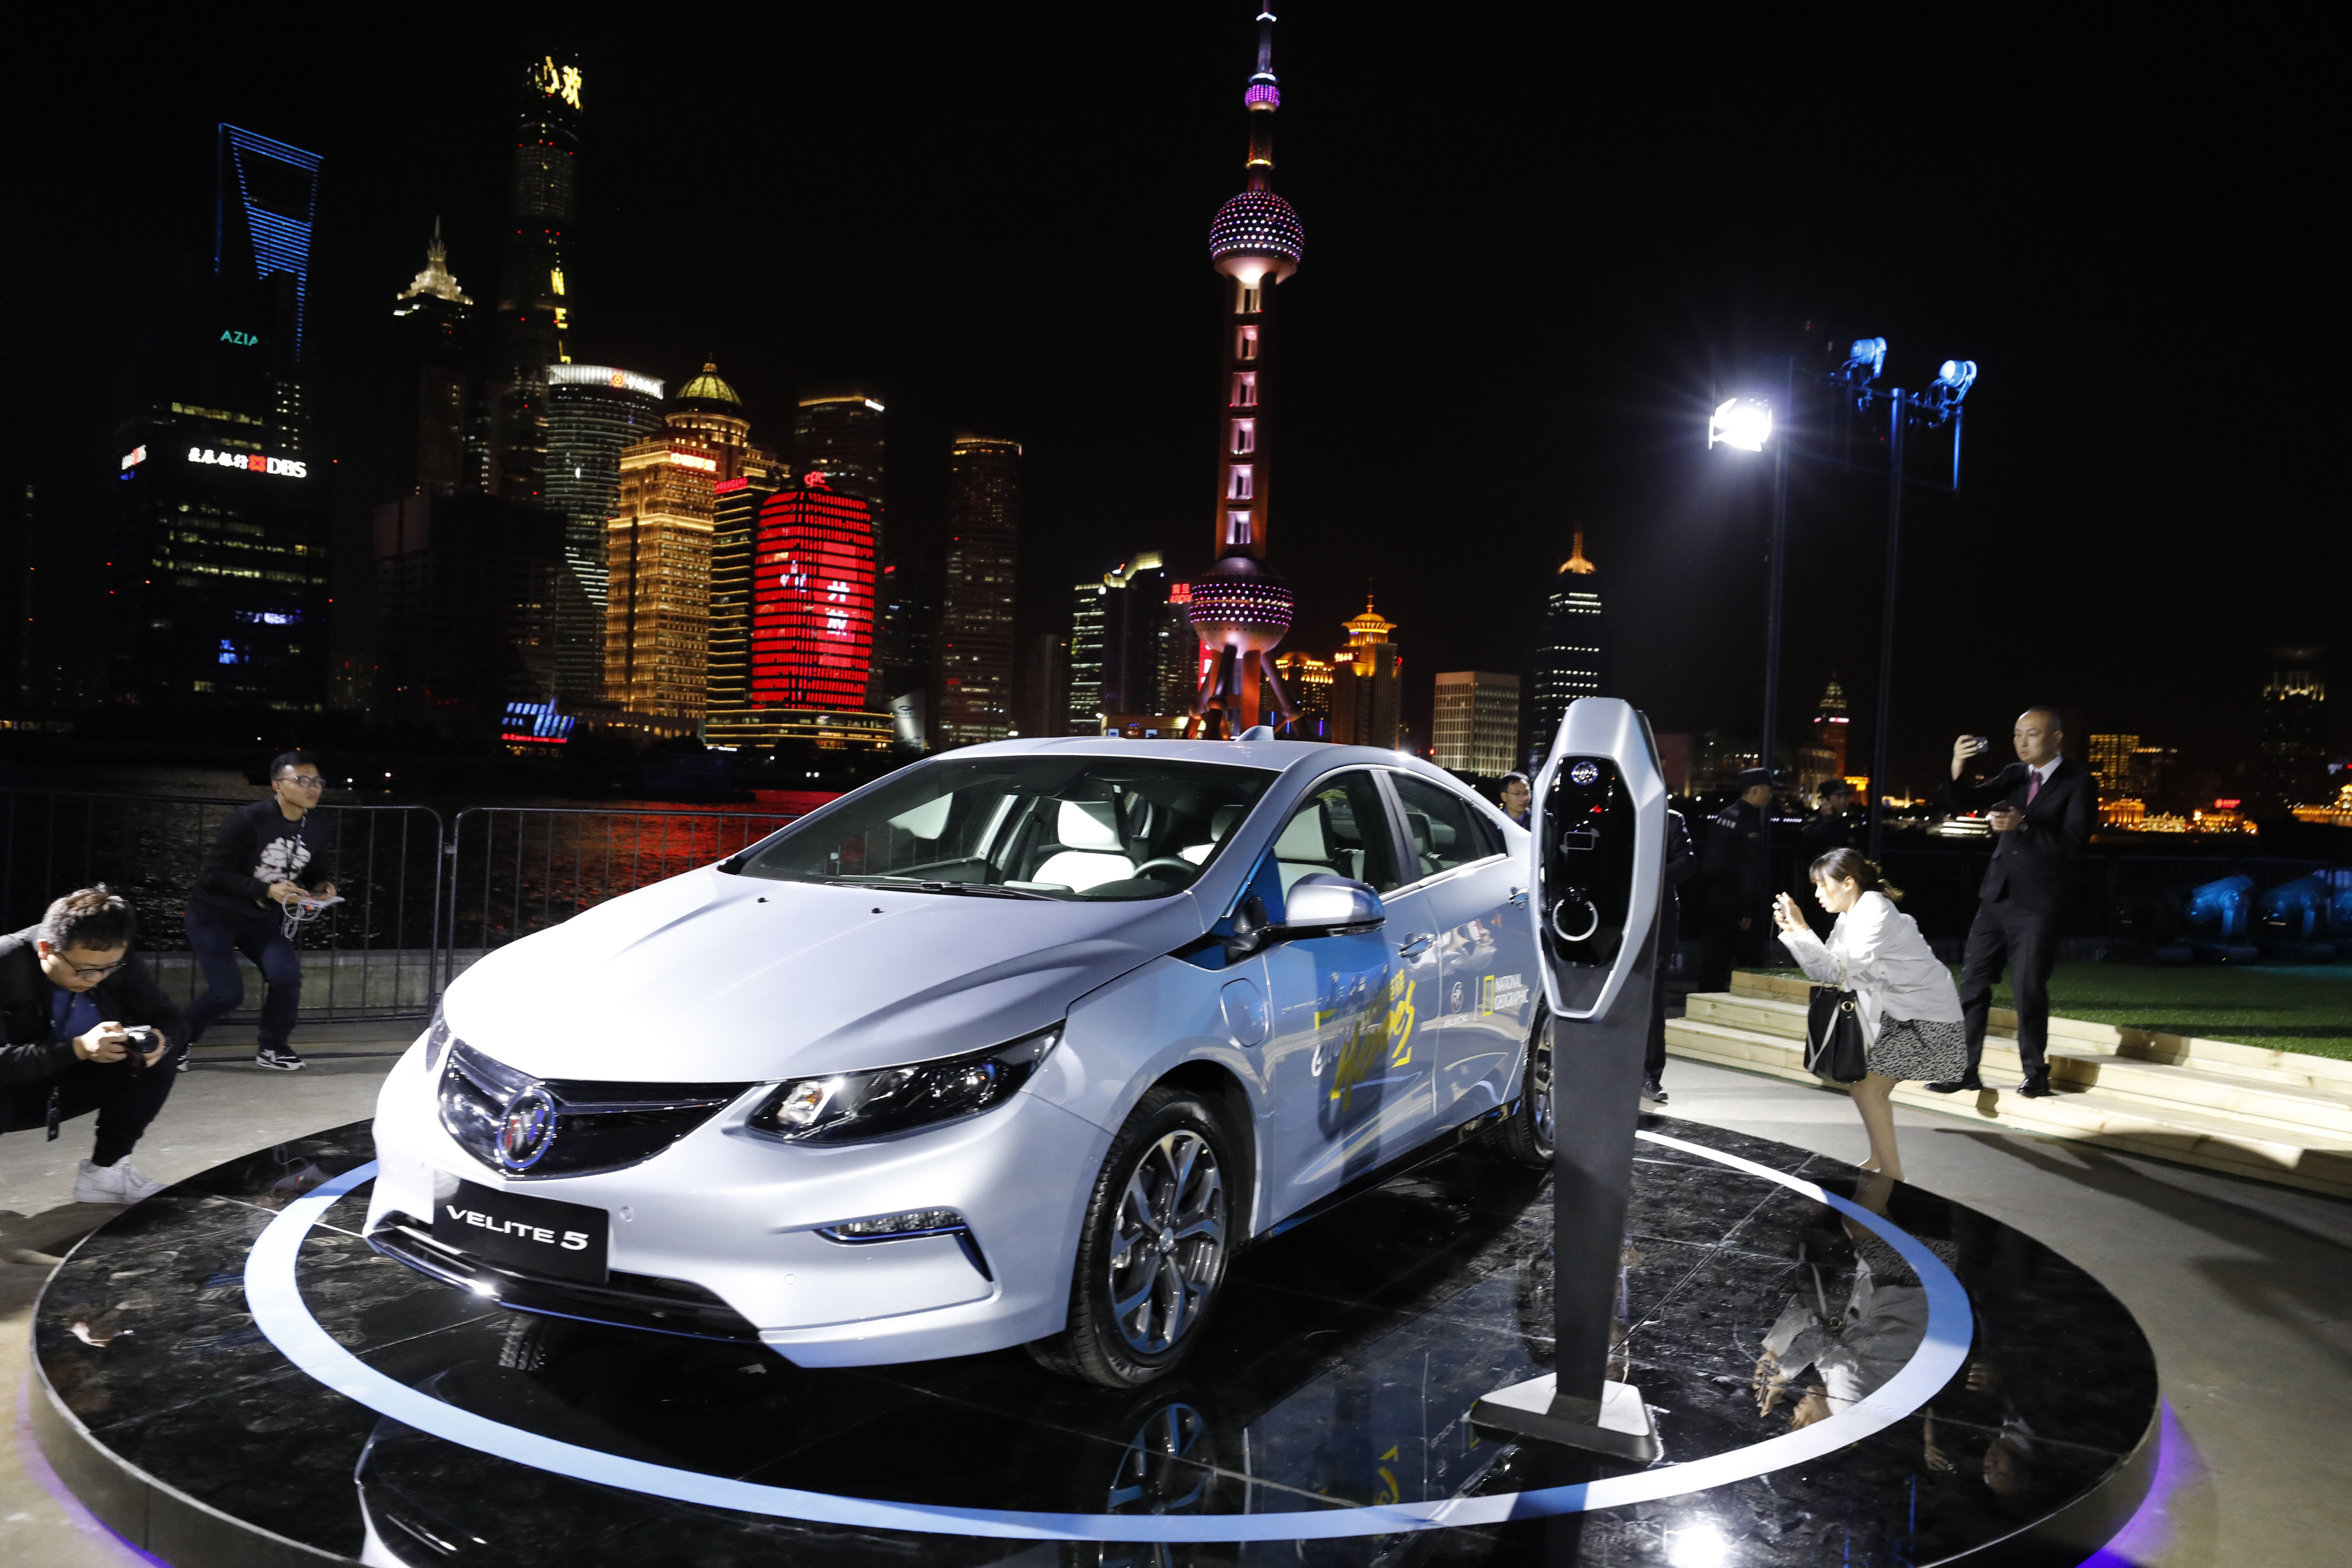 Visitors take photos of the Buick Velite 5, an extended range electric hybrid, during a global launch event ahead of the Shanghai Auto 2017 show in Shanghai, China, Tuesday, April 18, 2017. At the auto show, the global industry's biggest marketing event of the year, almost every global and Chinese auto brand is showing at least one electric concept vehicle, if not a market-ready model. (AP Photo/Ng Han Guan)